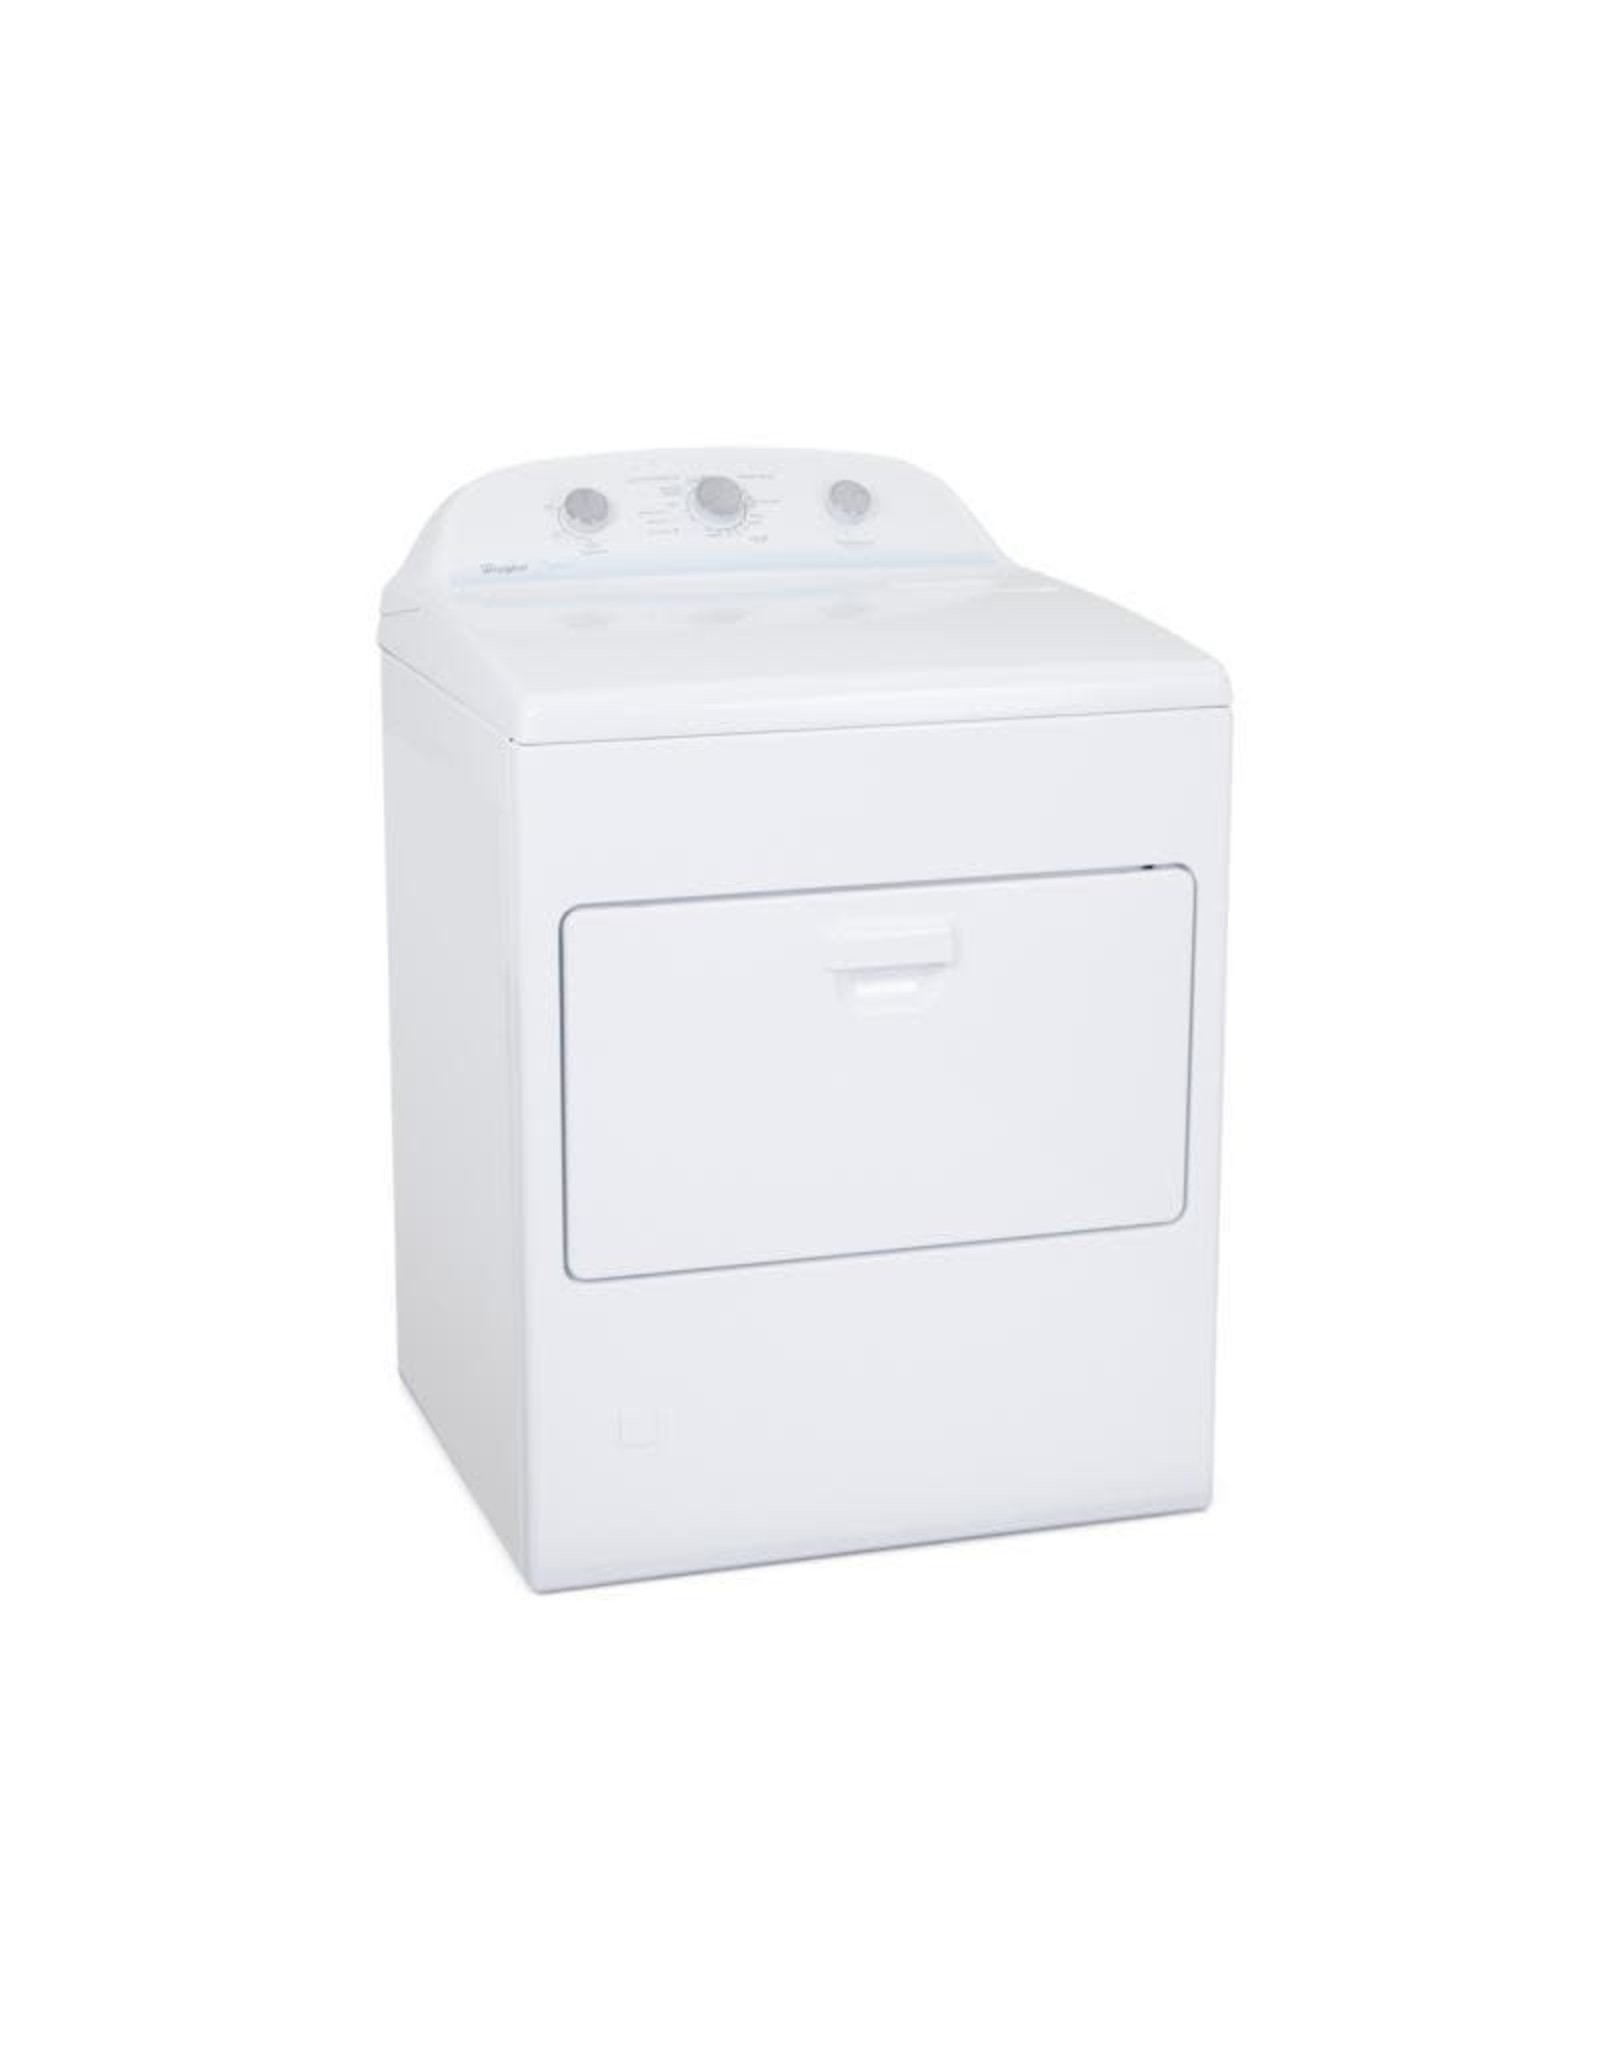 Whirlpool Dryer 17 KG - Gas 7MWGD1750EQ